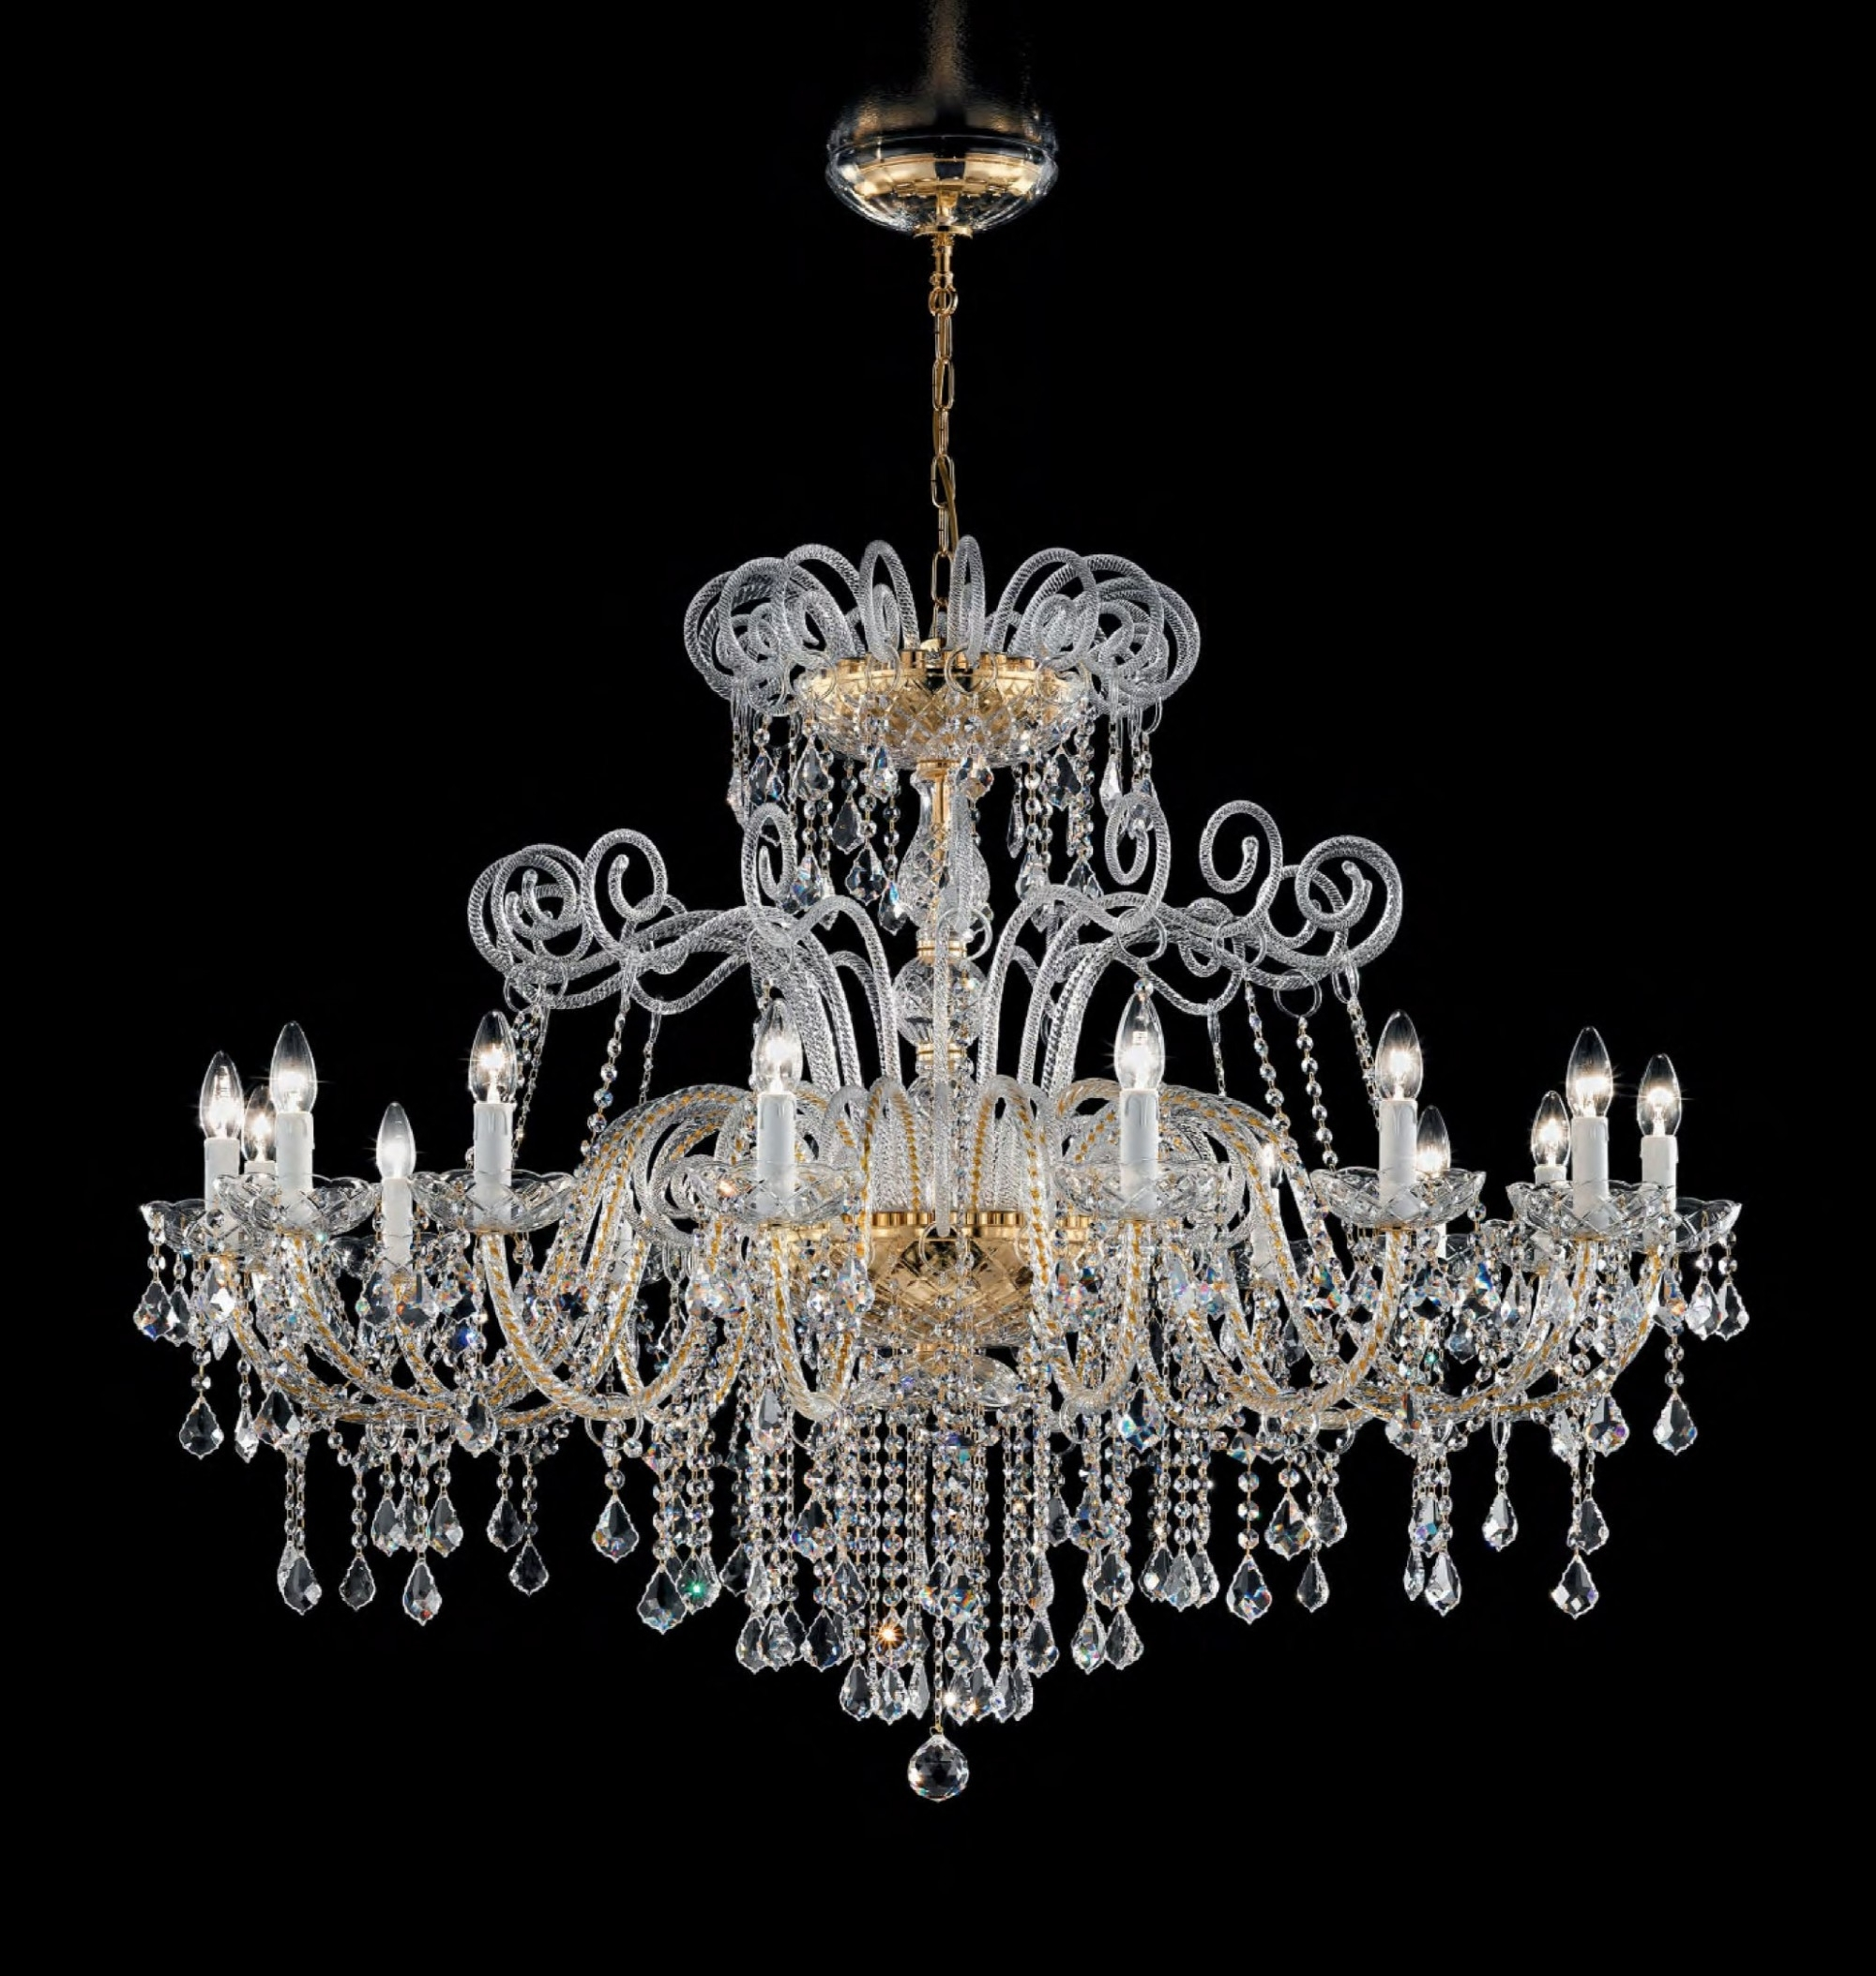 Antique Style Murano Glass Swarovski Crystals Chandelier Syl948K16 With Well Known Antique Looking Chandeliers (View 7 of 20)